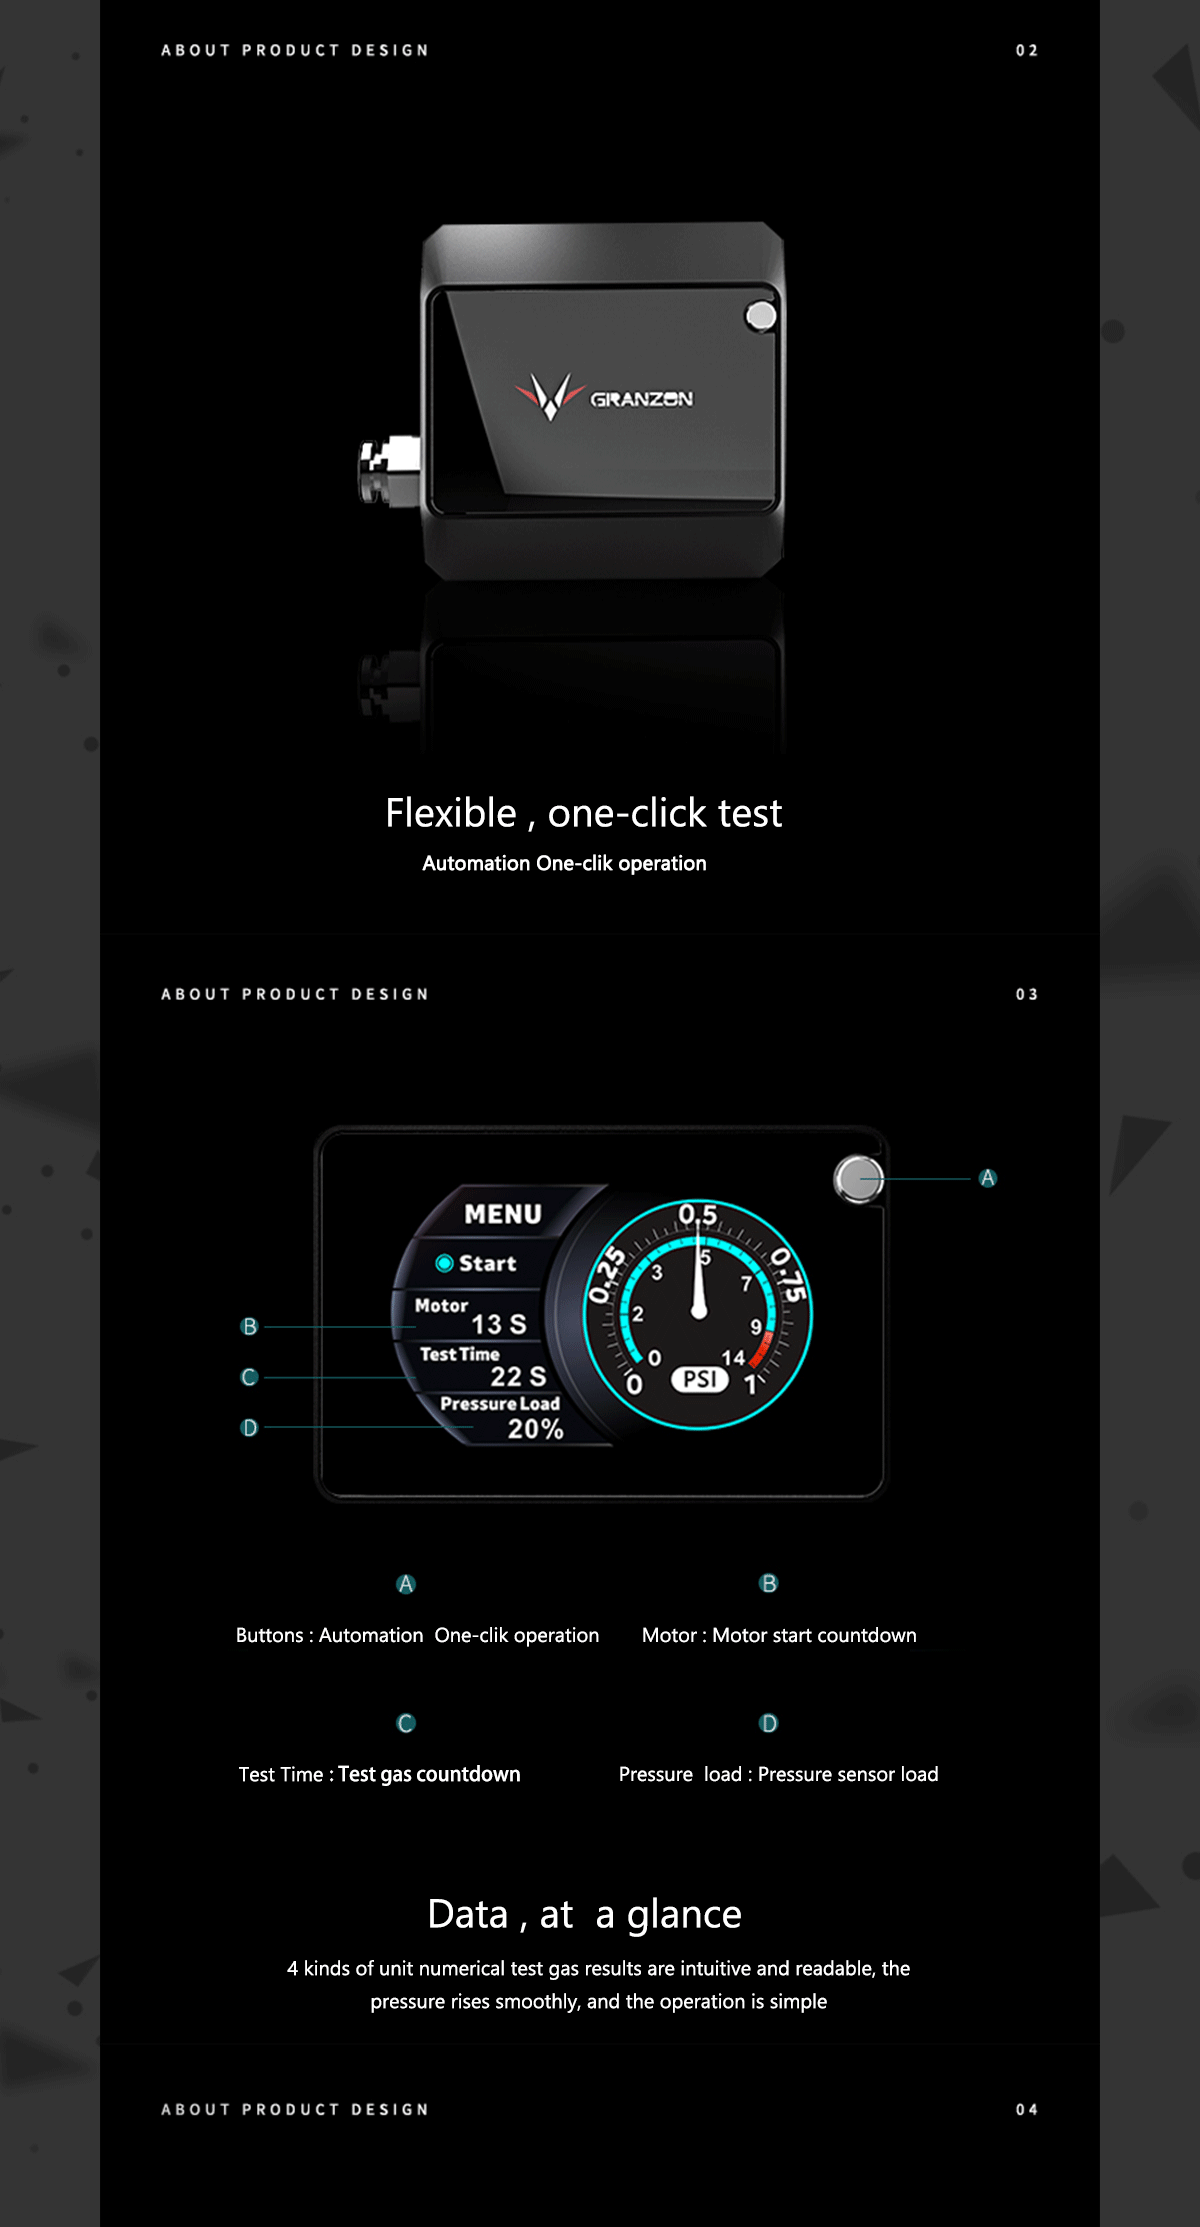 Granzon Air Leaker Tester Fully Automatic OLED Display Screen Leak Test Device Computer Water Cooling Tools, GYB